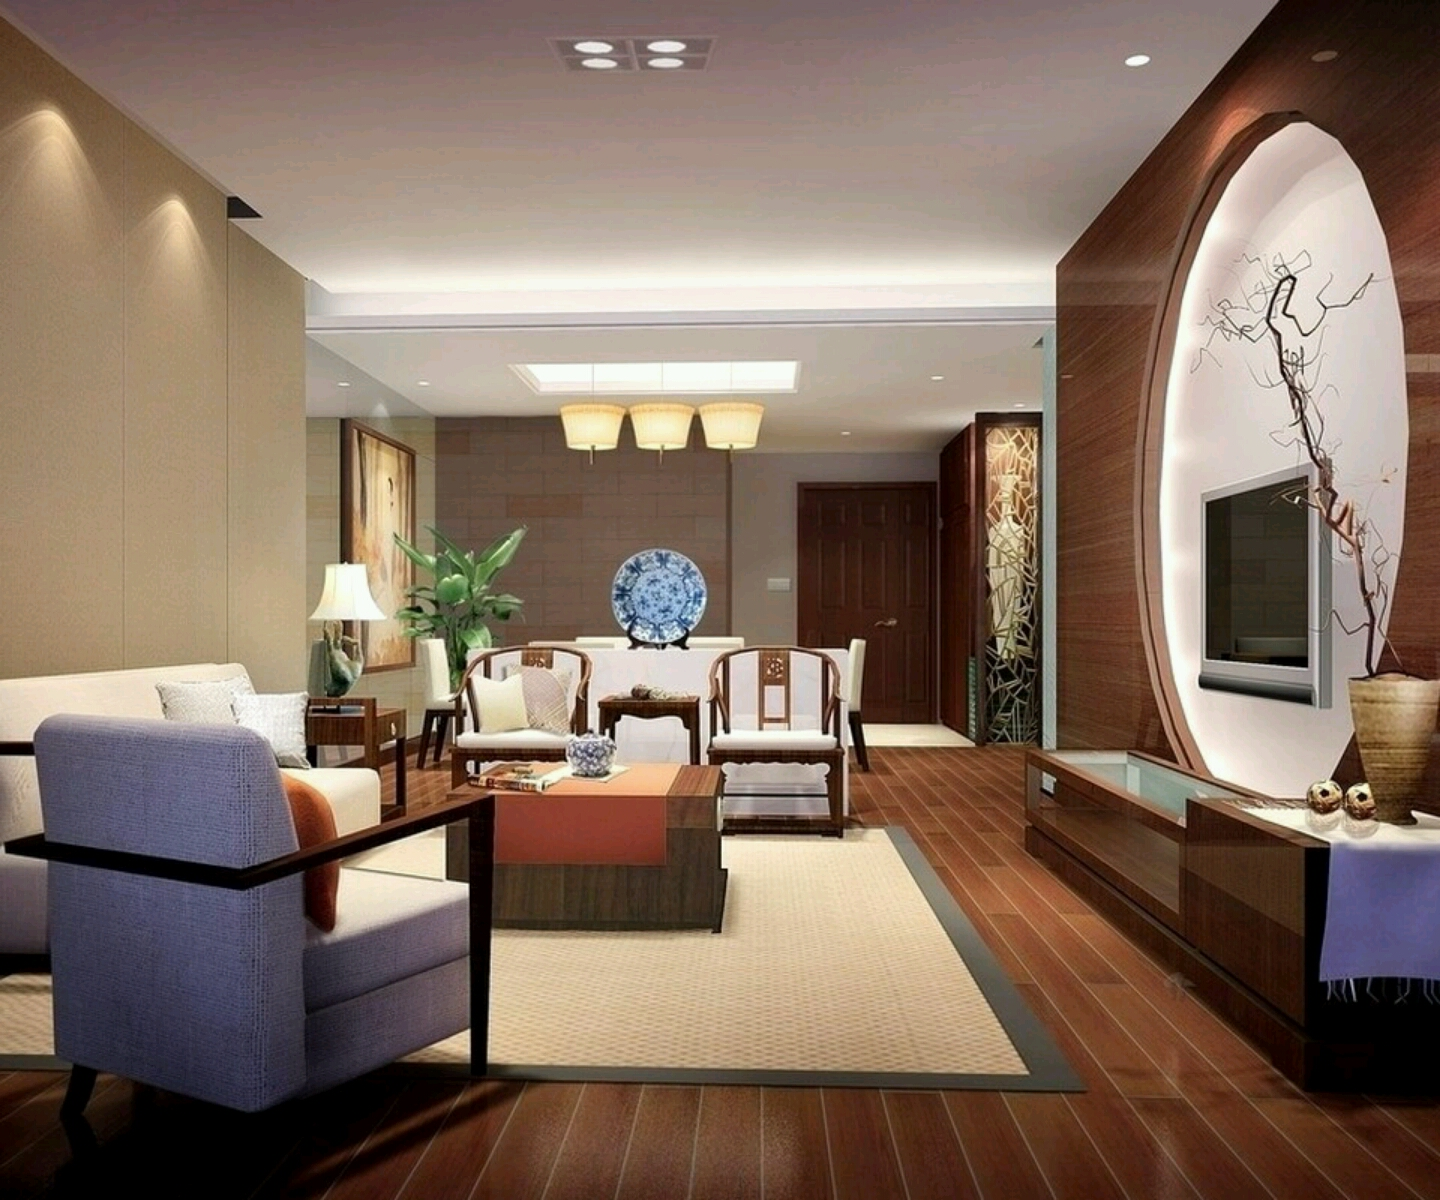 Luxury homes interior decoration living room designs ideas modern home designs - Interior decoration of living room ...